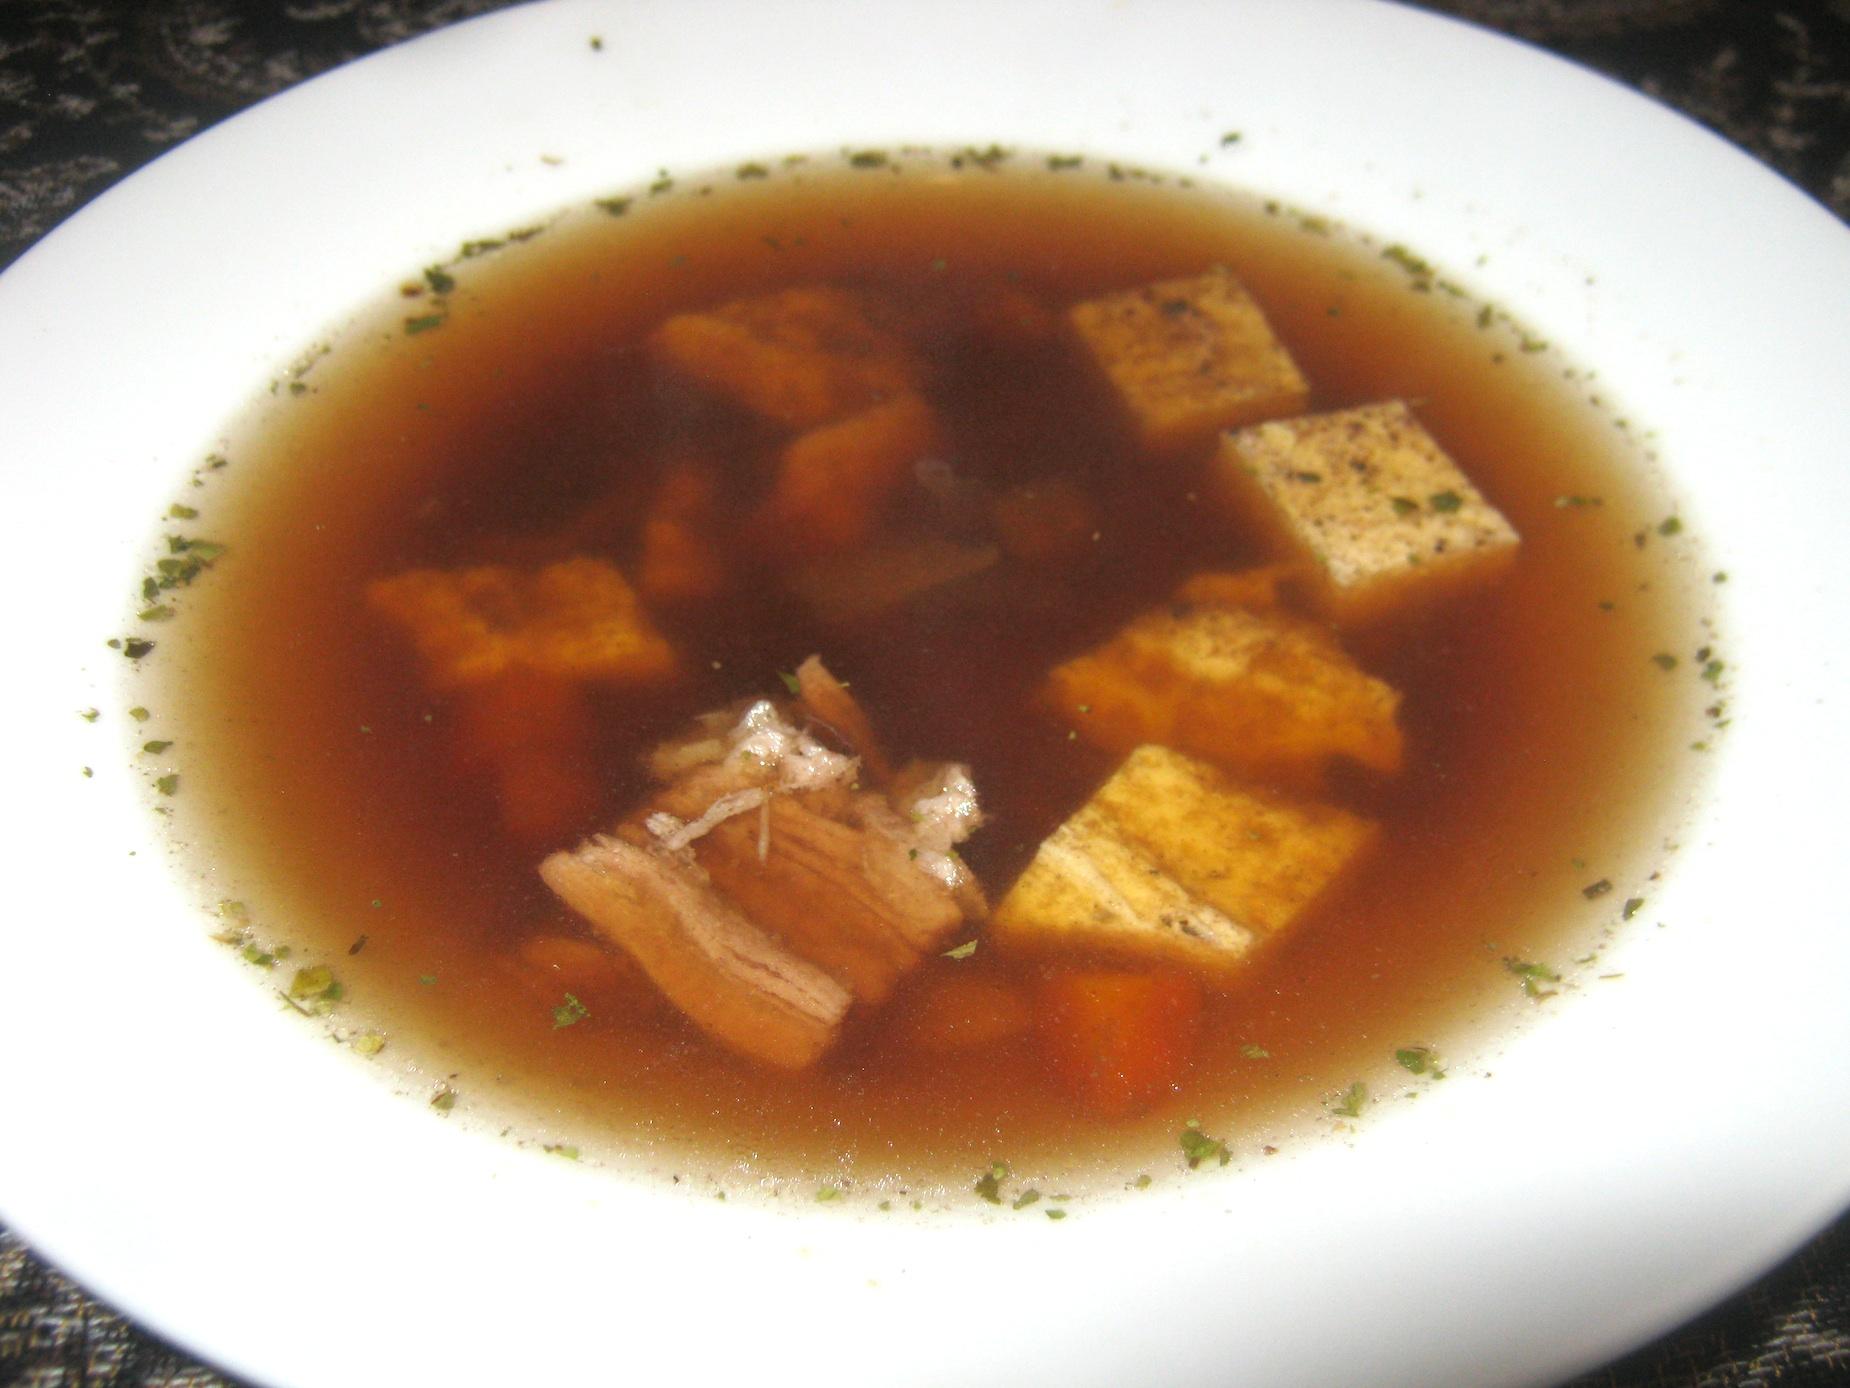 Clear Beef Broth with Eierstich /Egg Custard